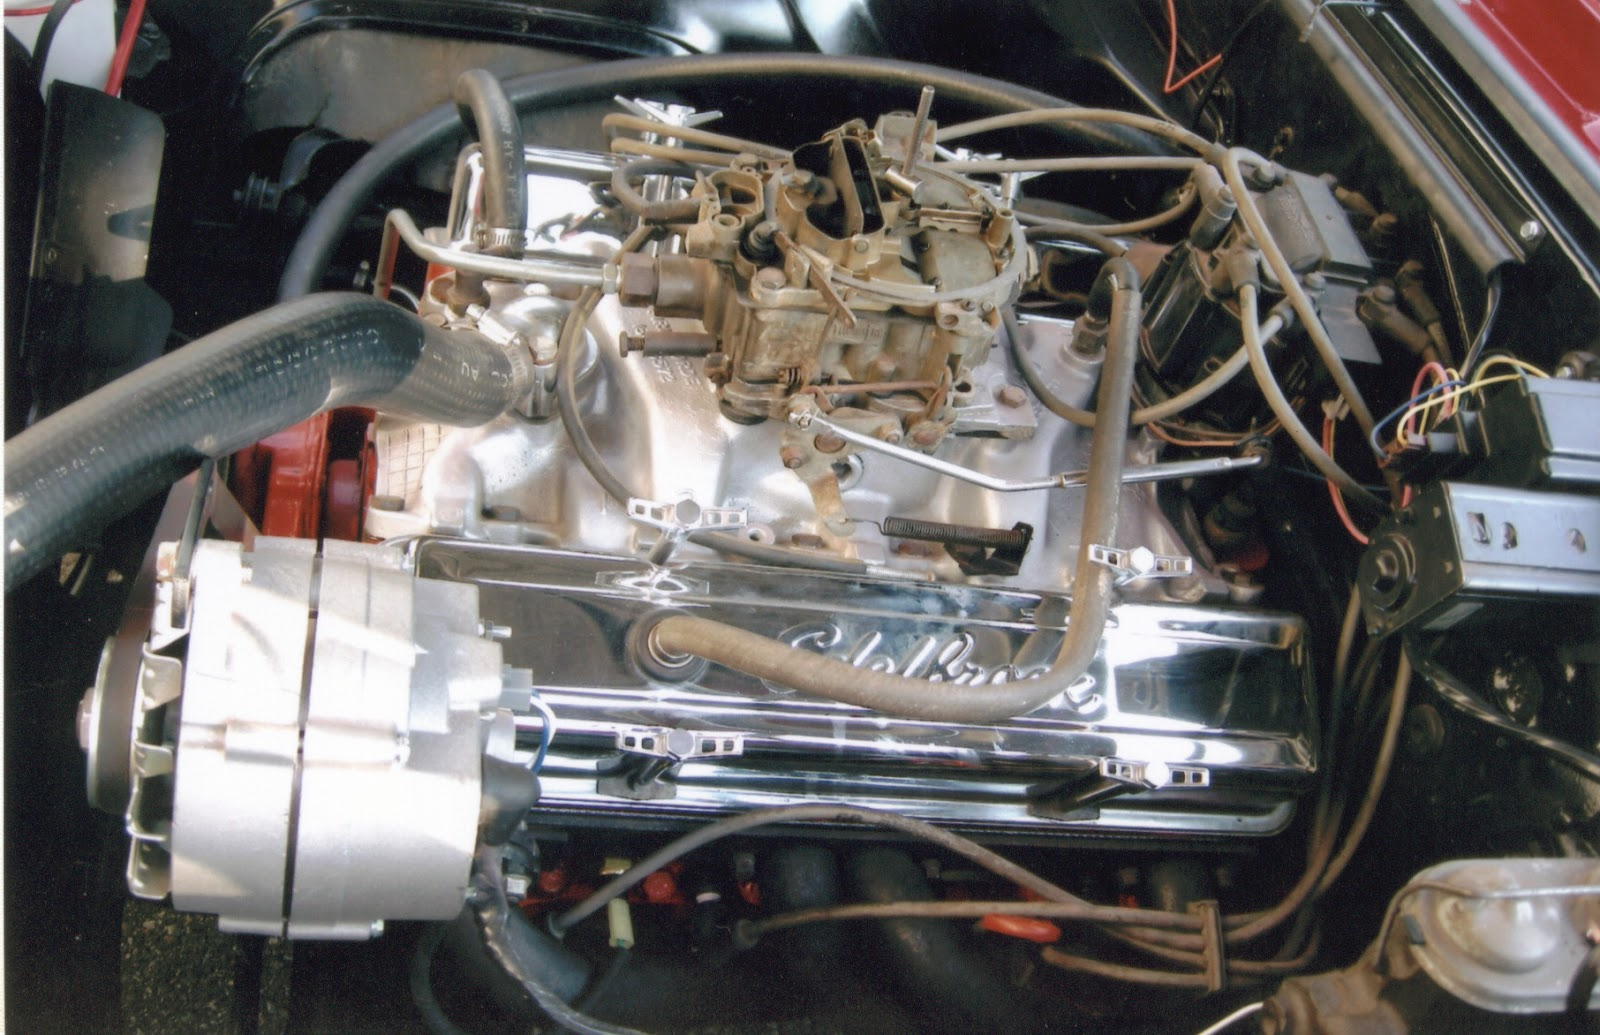 wiring diagram for chevy small block 327 wiring librarythe original ep code 327 was still there [ 1600 x 1035 Pixel ]